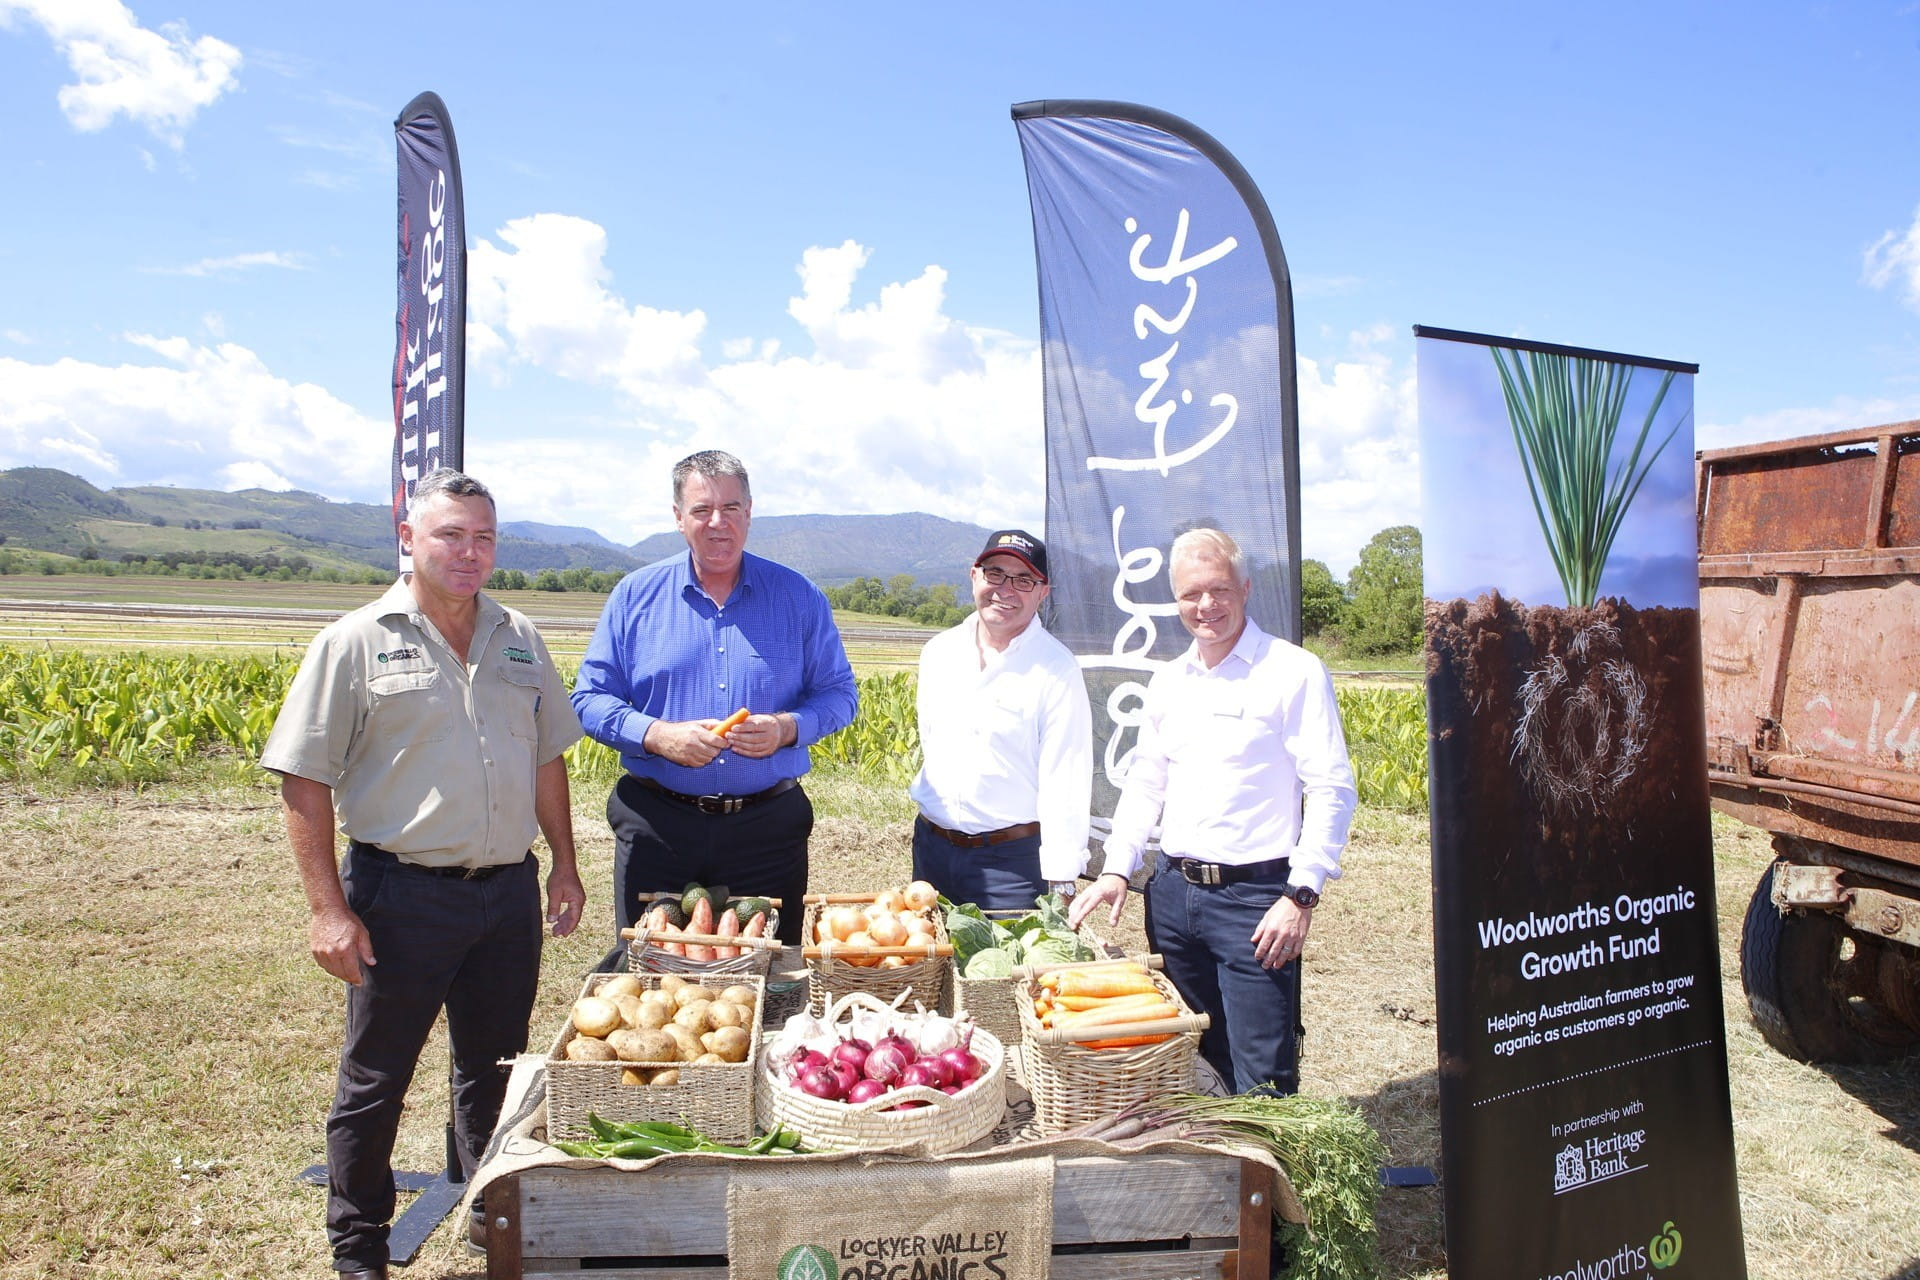 CAPTION: Launching the Woolworths Organic Growth Fund are (from left) Lockyer Valley Organics director Anthony Bauer, Queensland Minister for Agricultural Industry Development and Fisheries Mark Furner MP, Heritage Bank CEO Peter Lock and Woolworths Head of Produce Paul Turner.